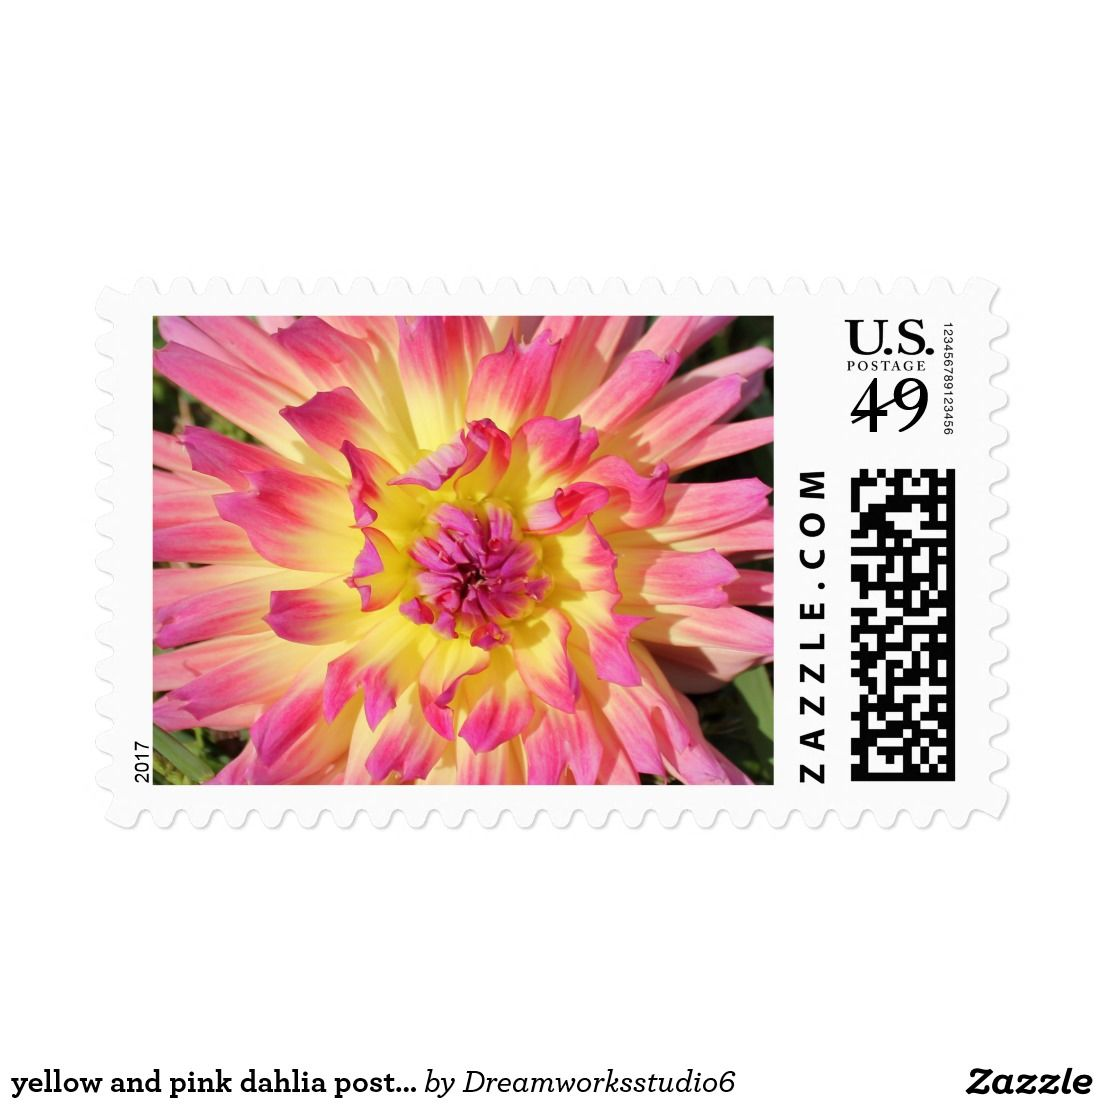 yellow and pink dahlia postage stamps